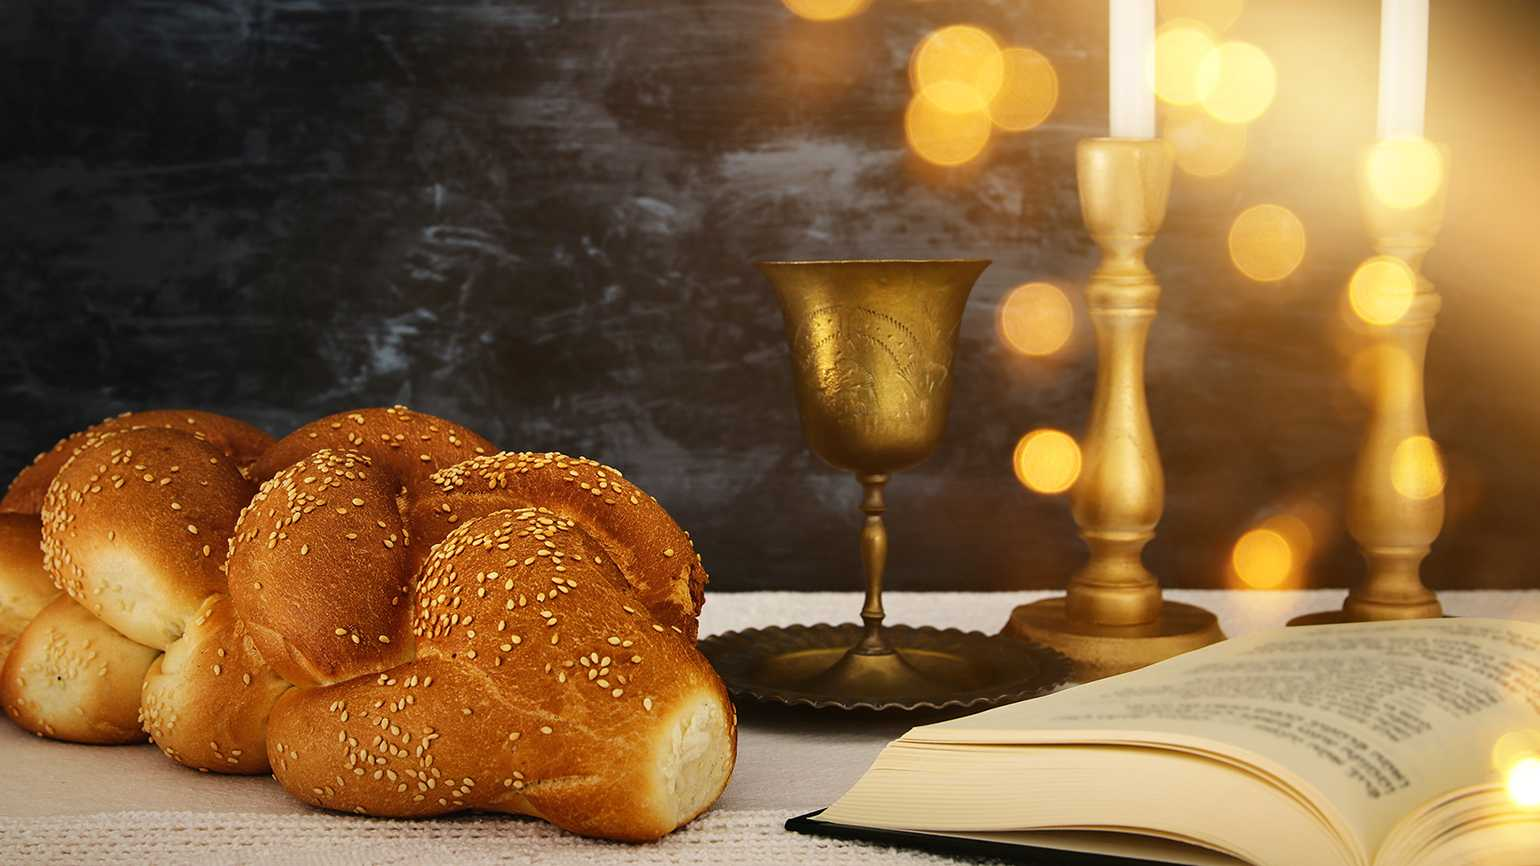 Challah bread, wine and candles are placed on a table for Shabbat